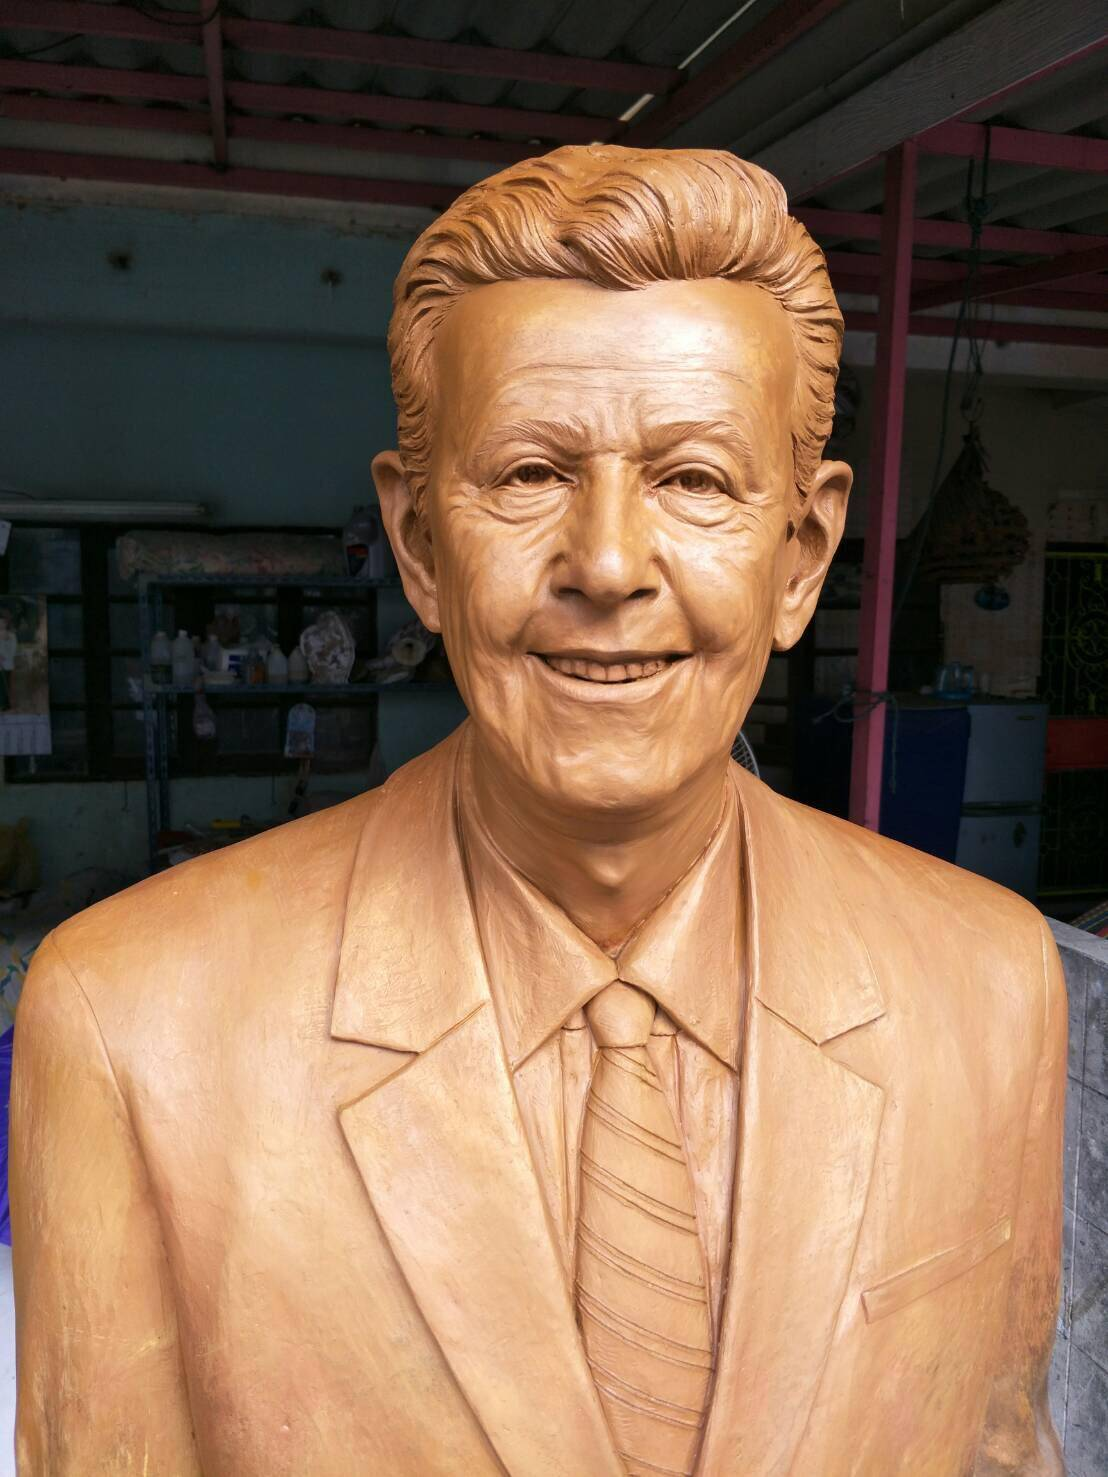 A cast of a man wearing a suit and smiling